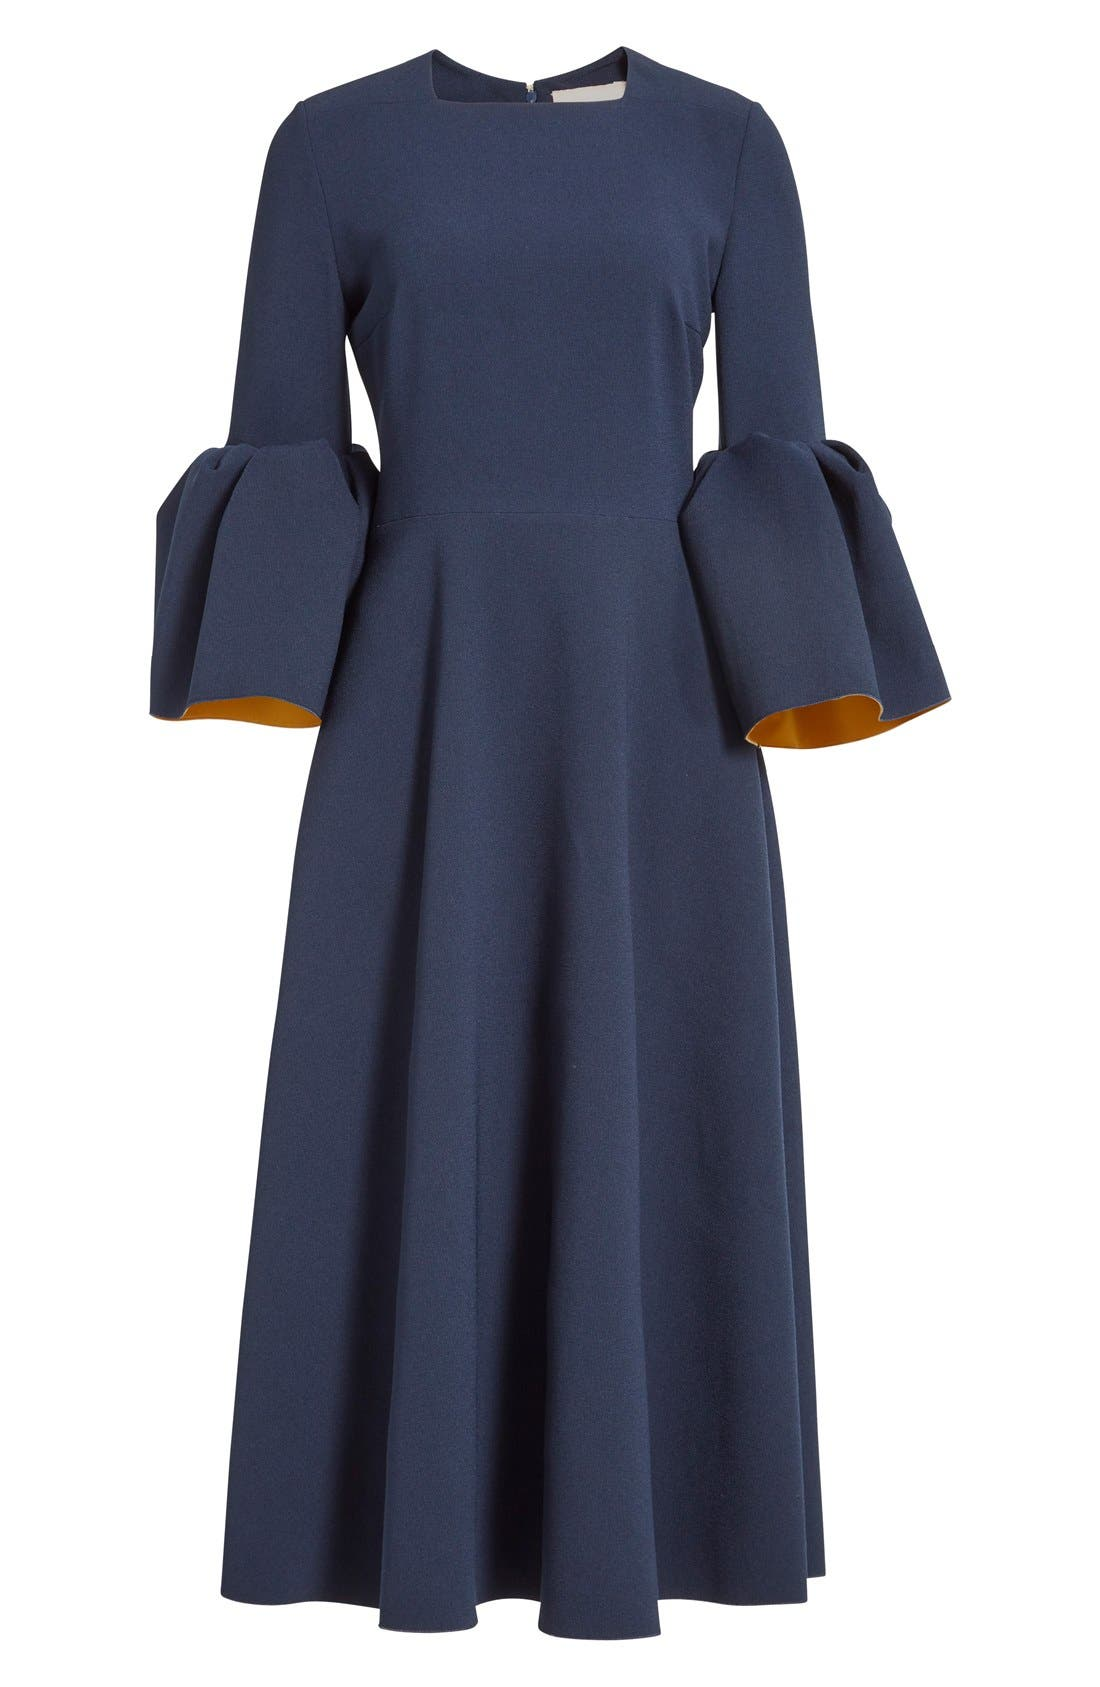 Turlin Flounce Sleeve Midi Dress,                             Alternate thumbnail 4, color,                             Navy/ Ochre